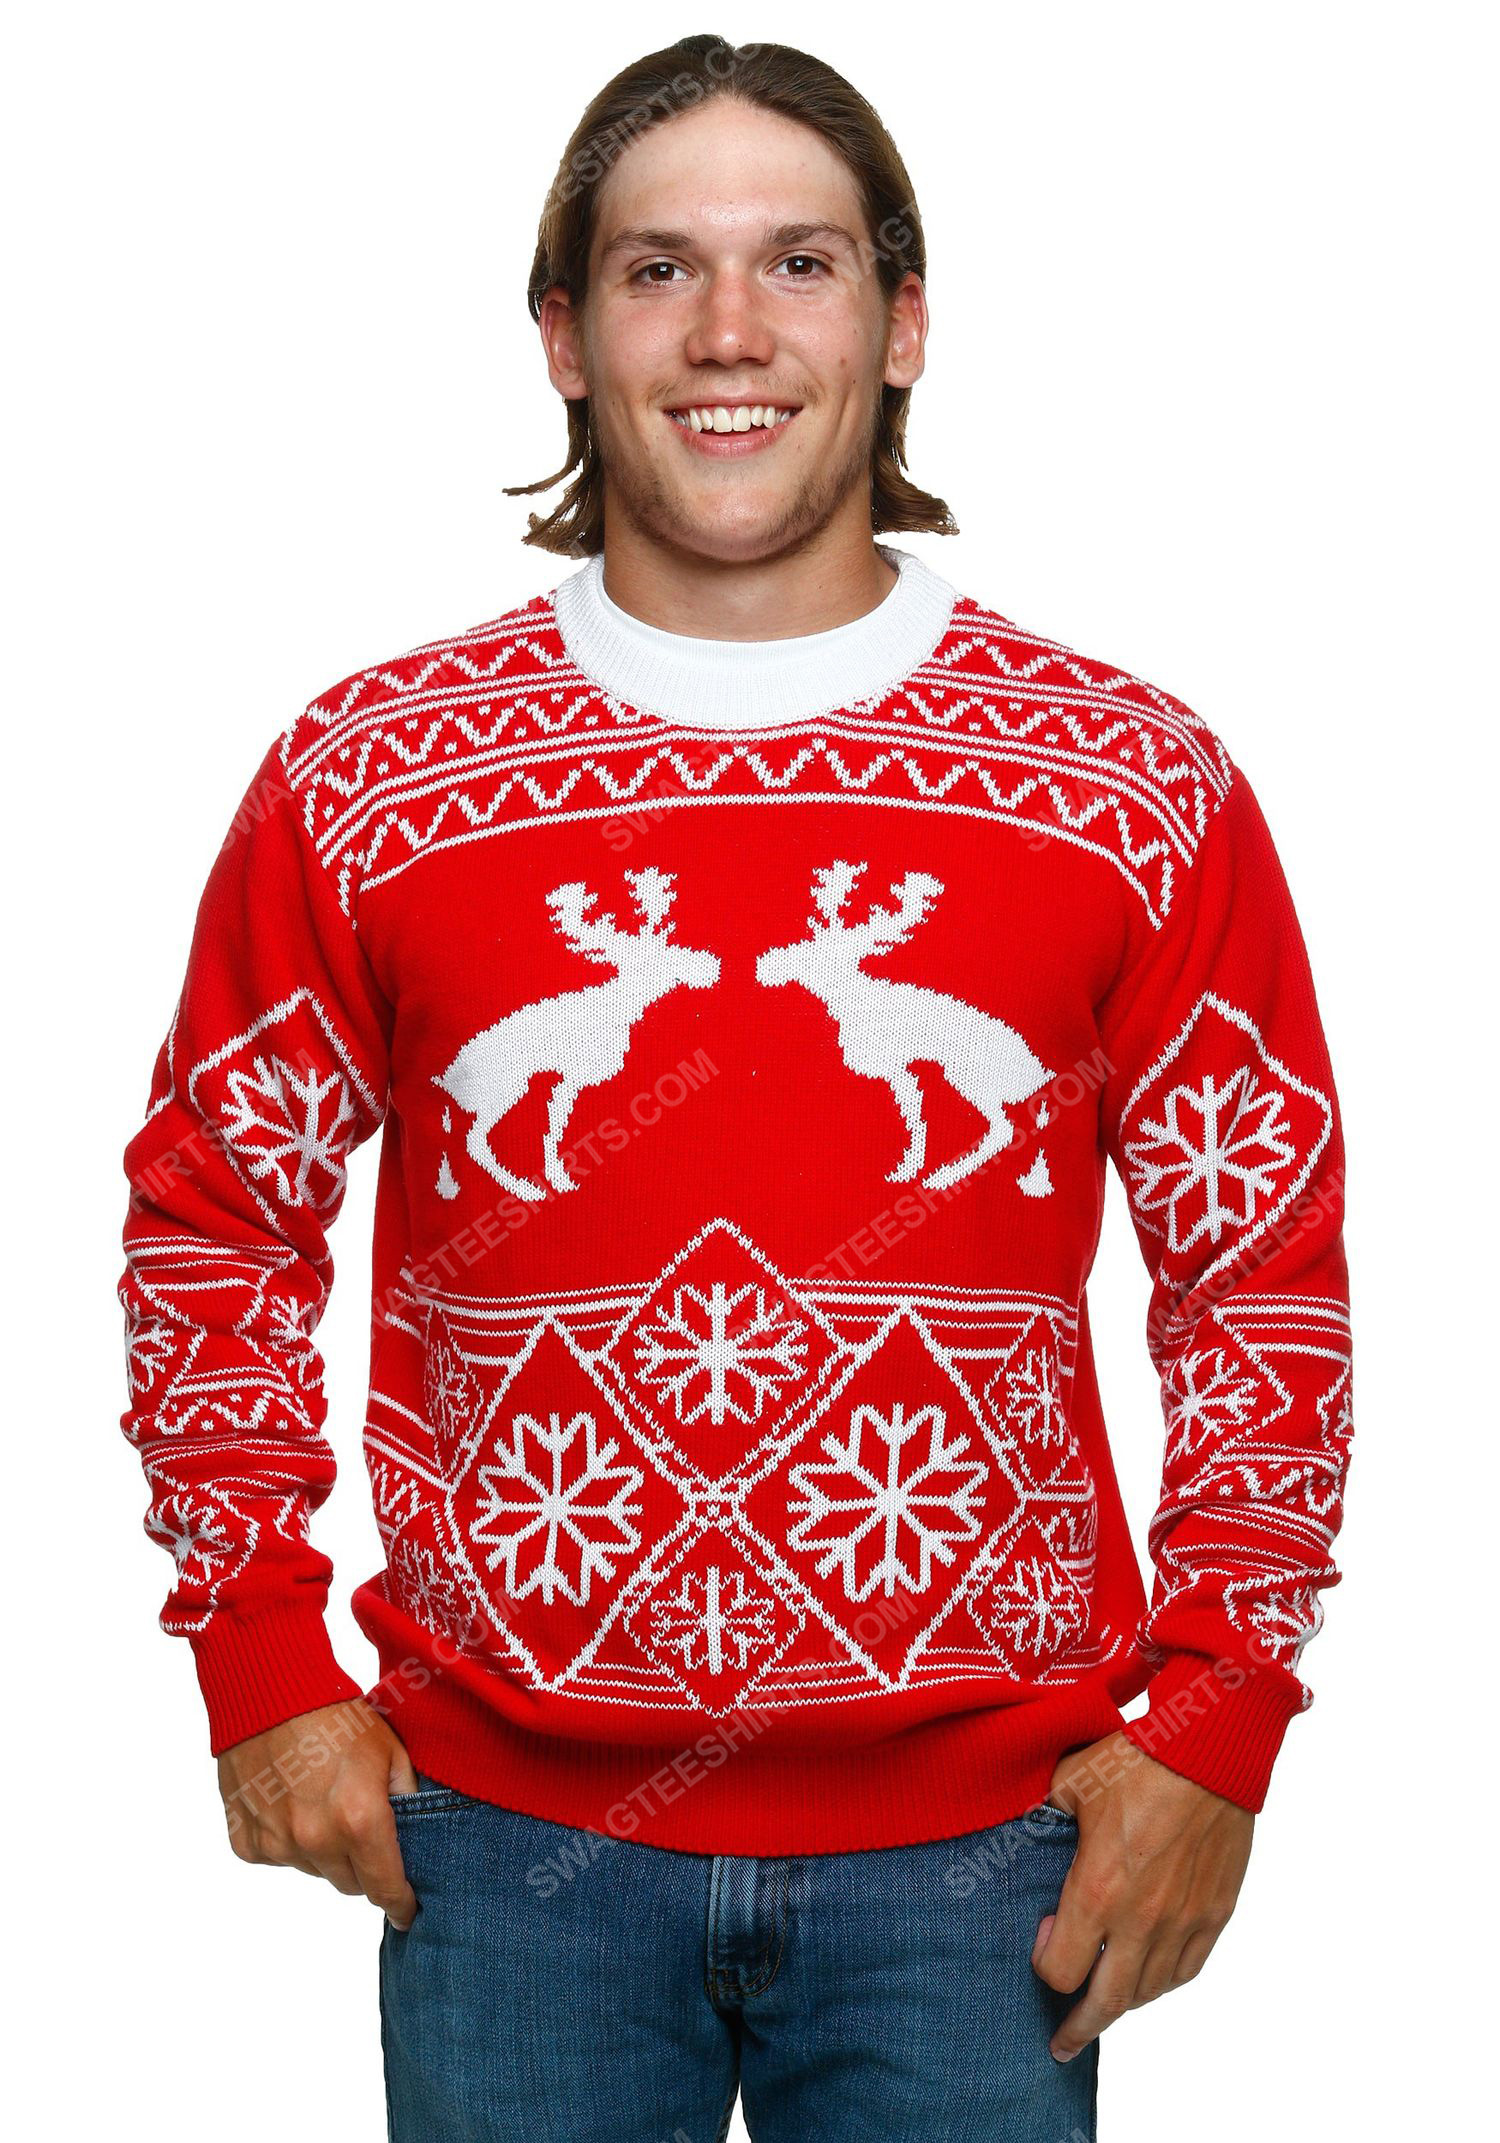 Pooping moose full print ugly christmas sweater 1 - Copy (2)